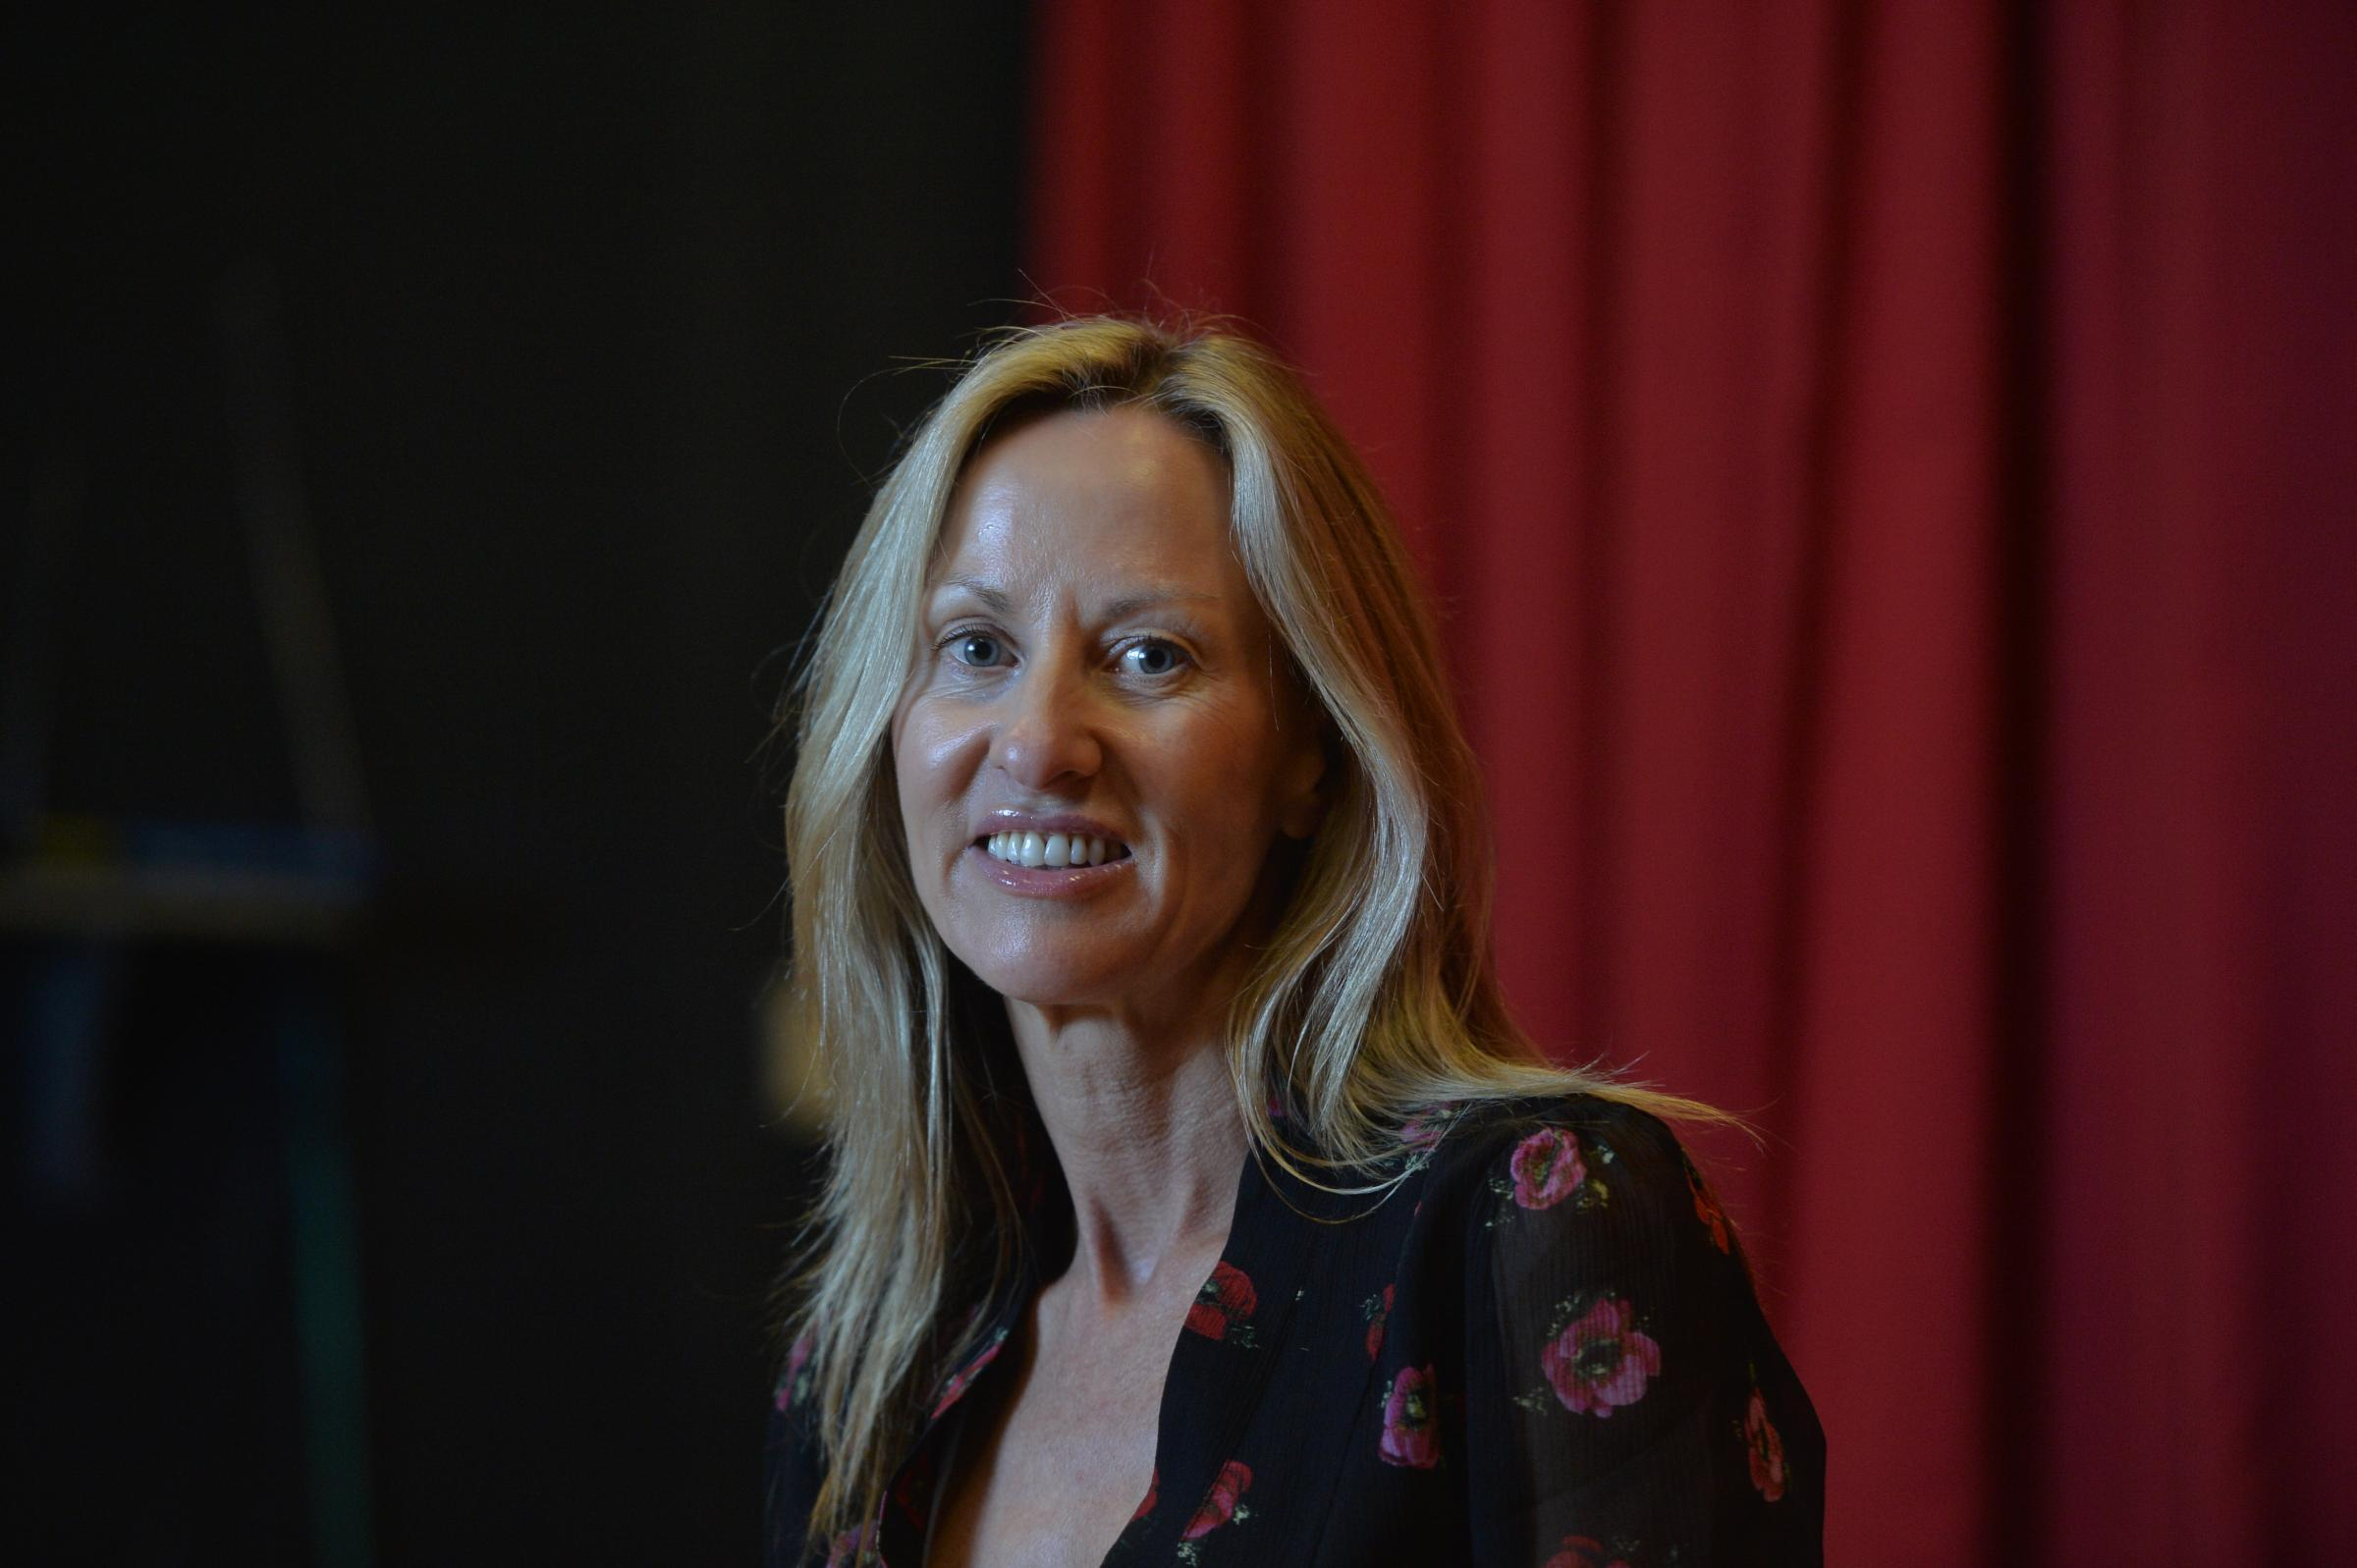 Author Angela Proctor on her dark fairytales and being called the next JK Rowling